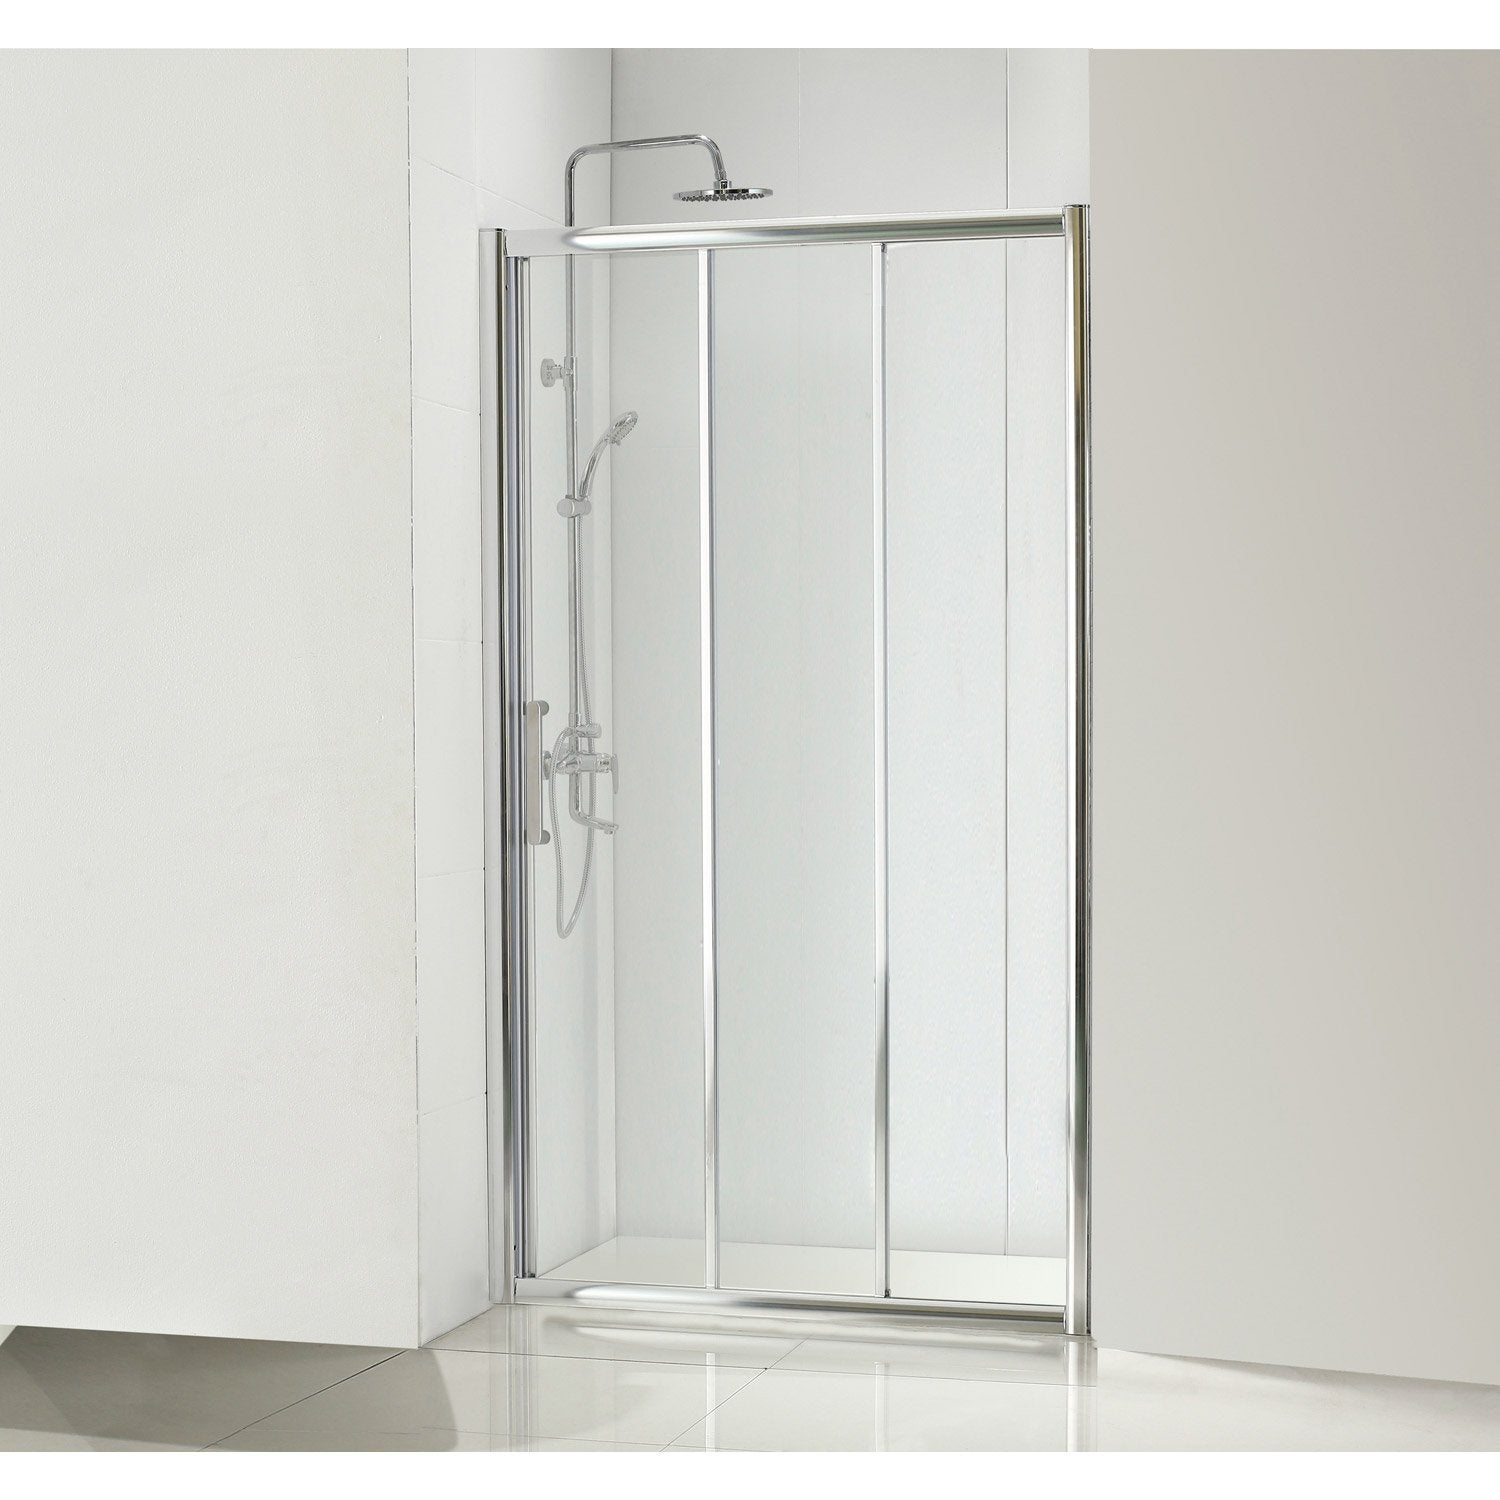 Porte de douche coulissante 90 cm transparent quad for Douche chez leroy merlin